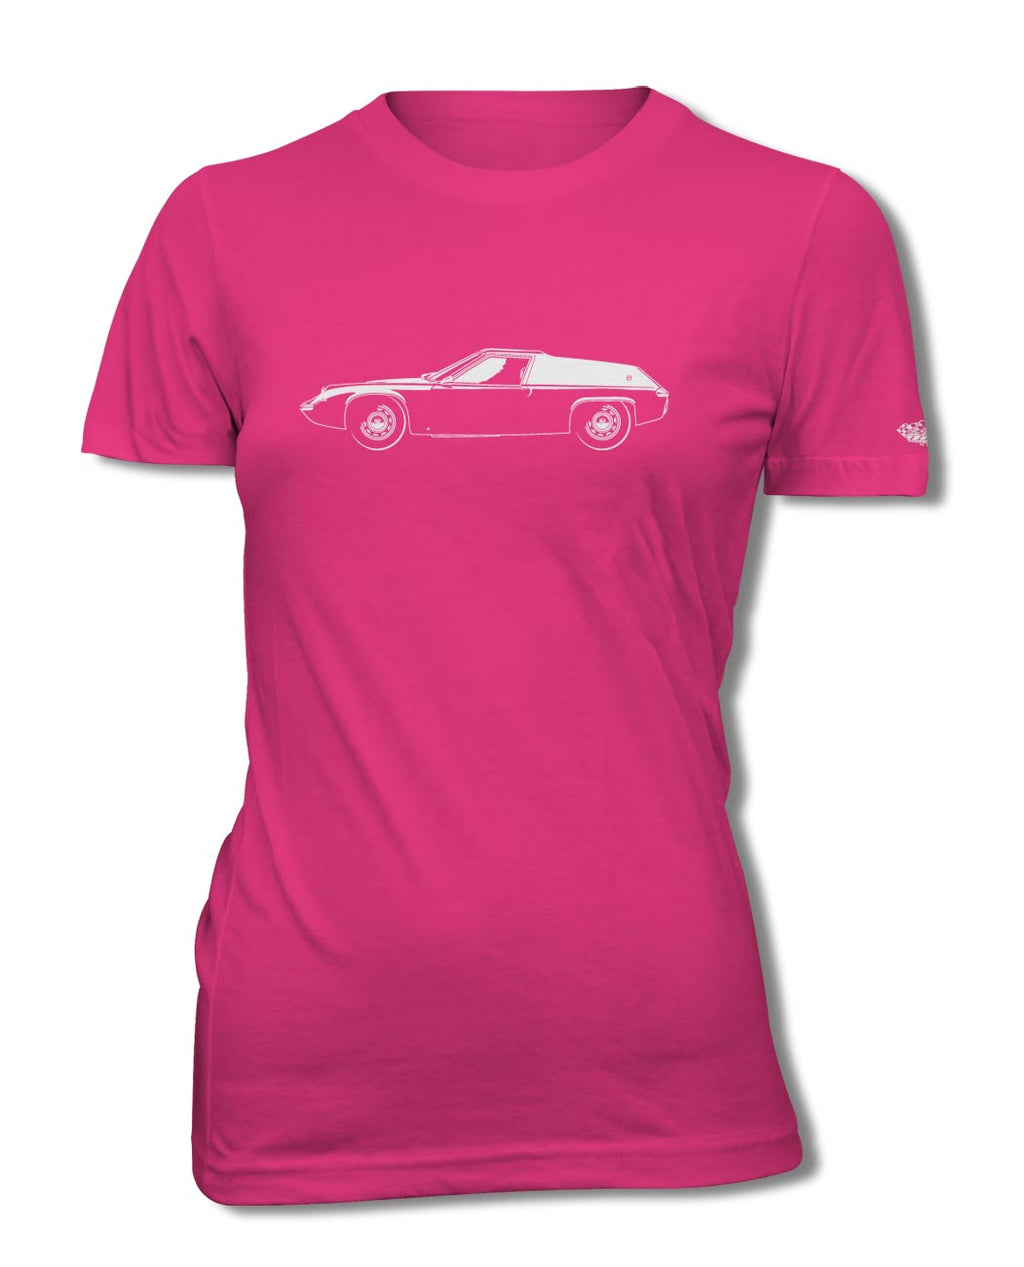 Lotus Europa S1 T-Shirt - Women - Side View